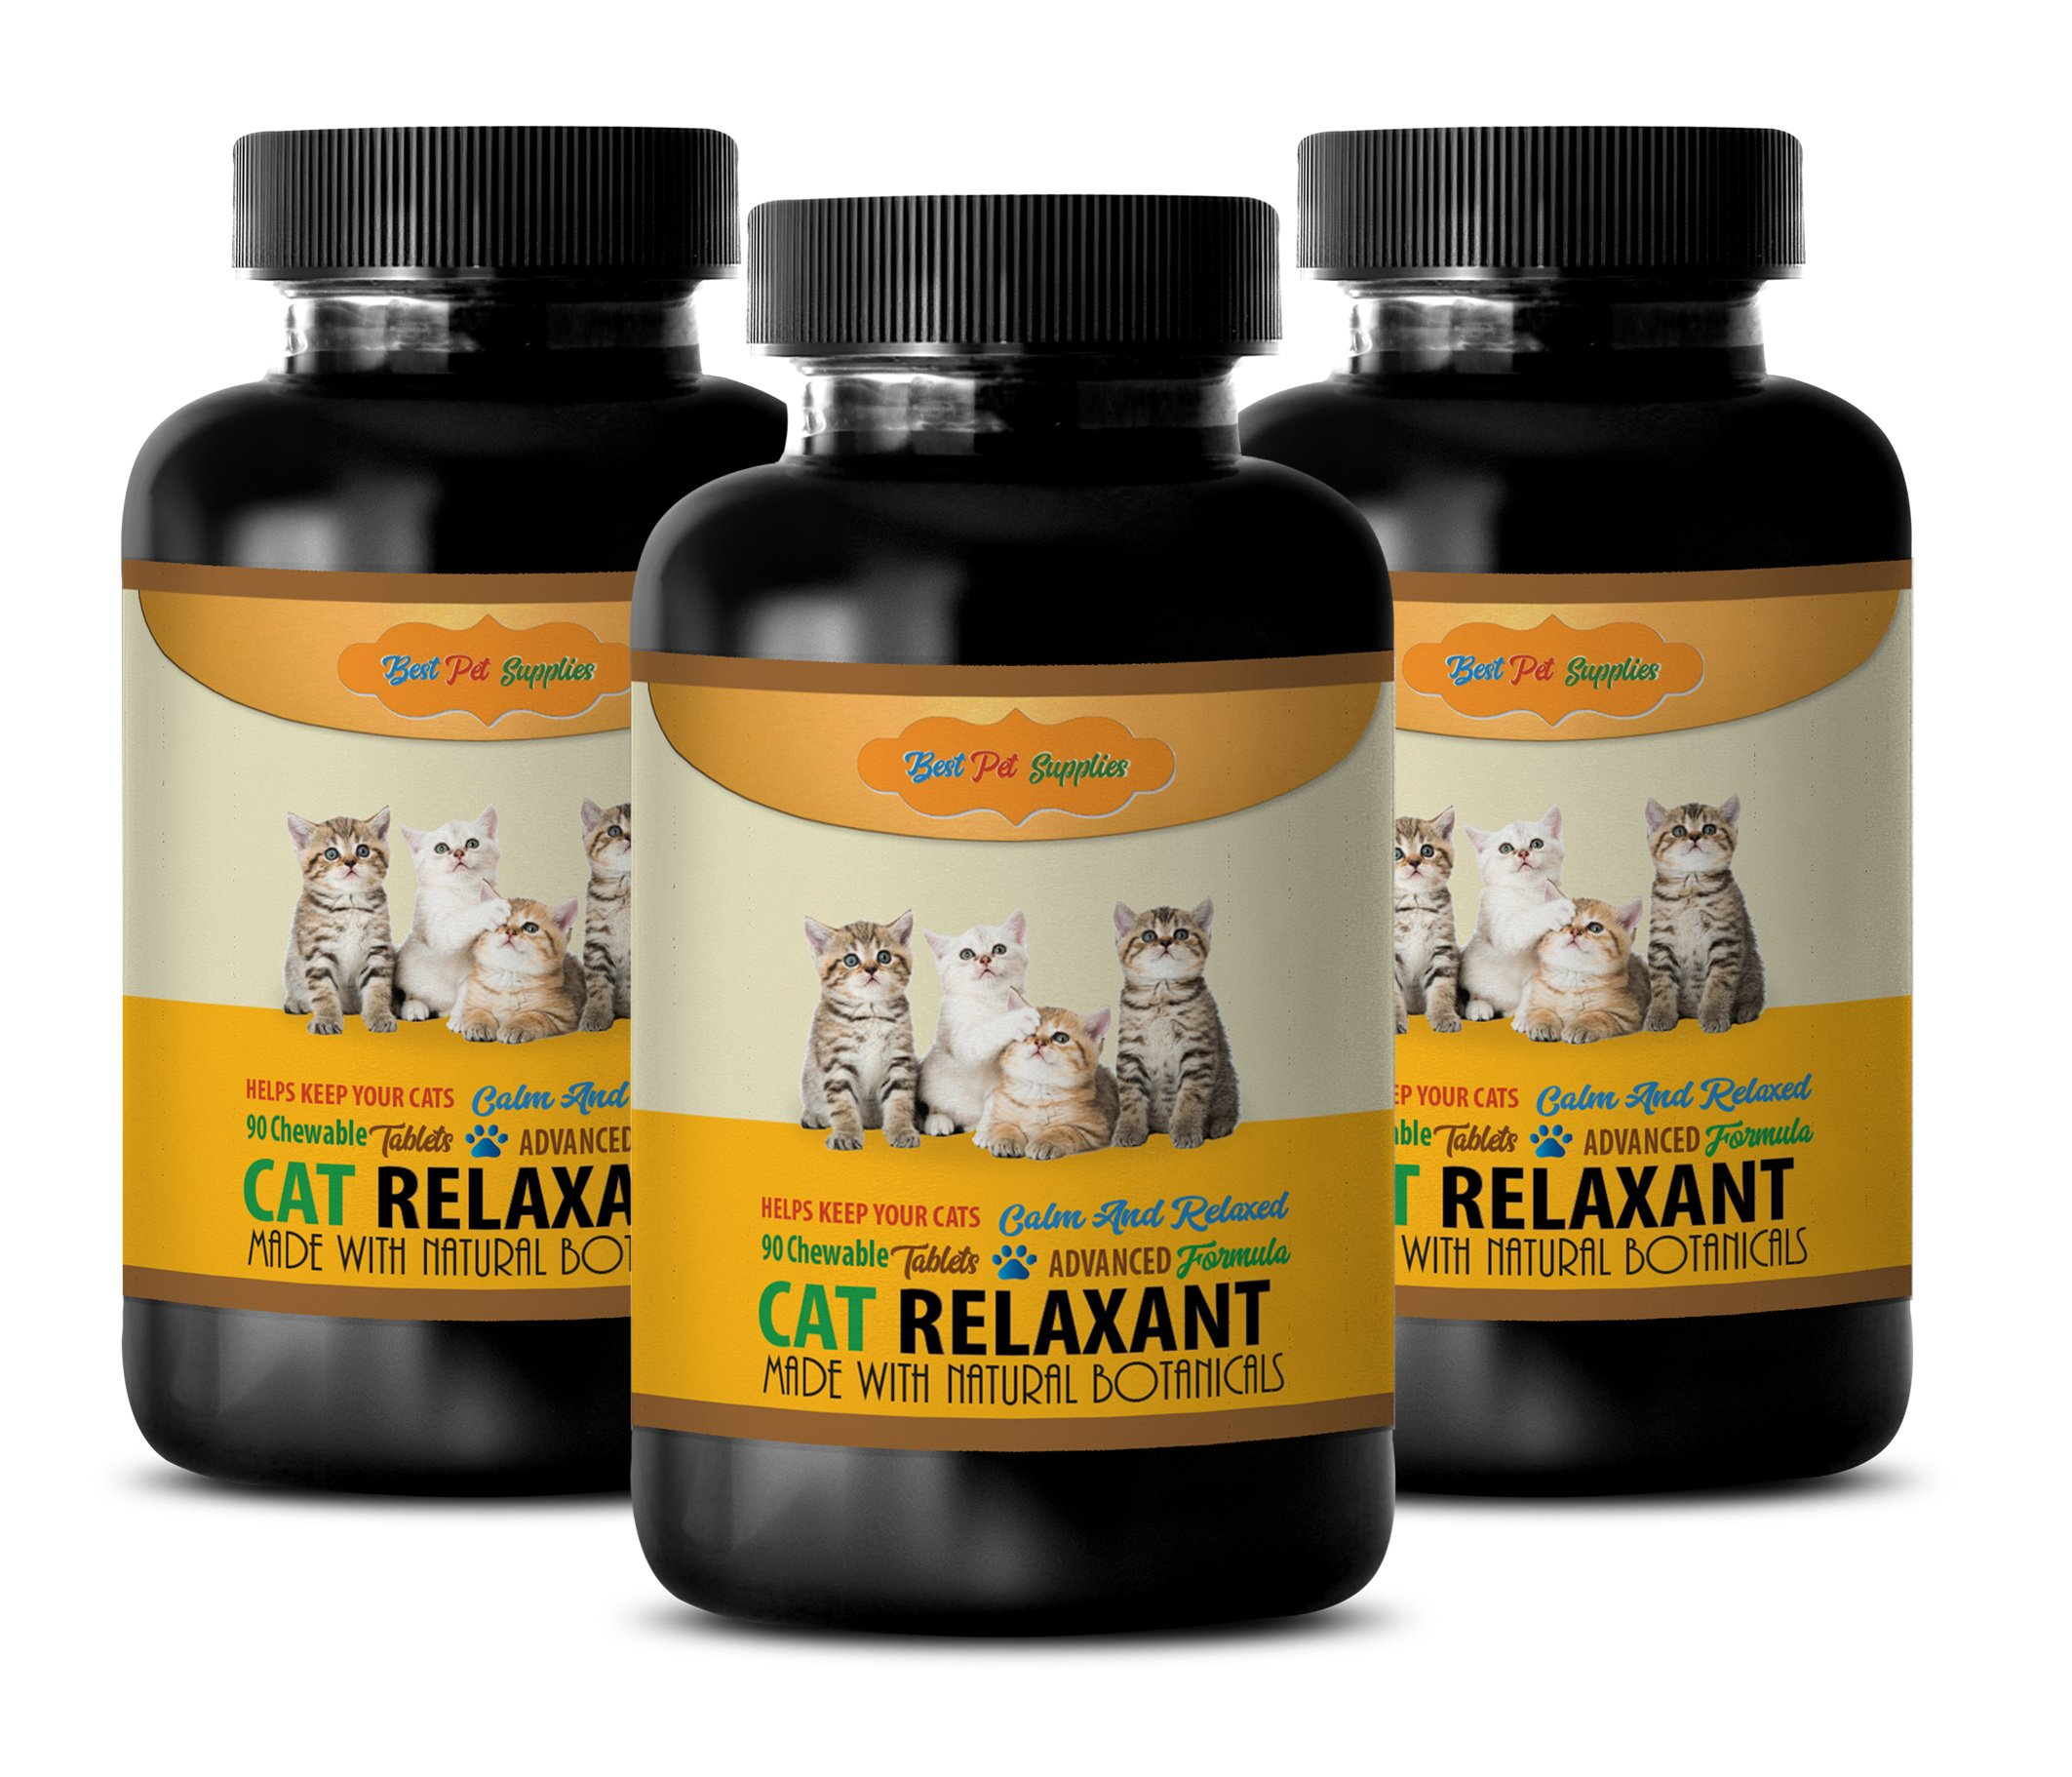 BEST PET SUPPLIES LLC Calming Products for Cats - Relaxant - for Cats - Keep Calm Formula - Chewy Treat - Aggressive cat Calming Diffuser - 270 Treats (3 Bottles) by BEST PET SUPPLIES LLC